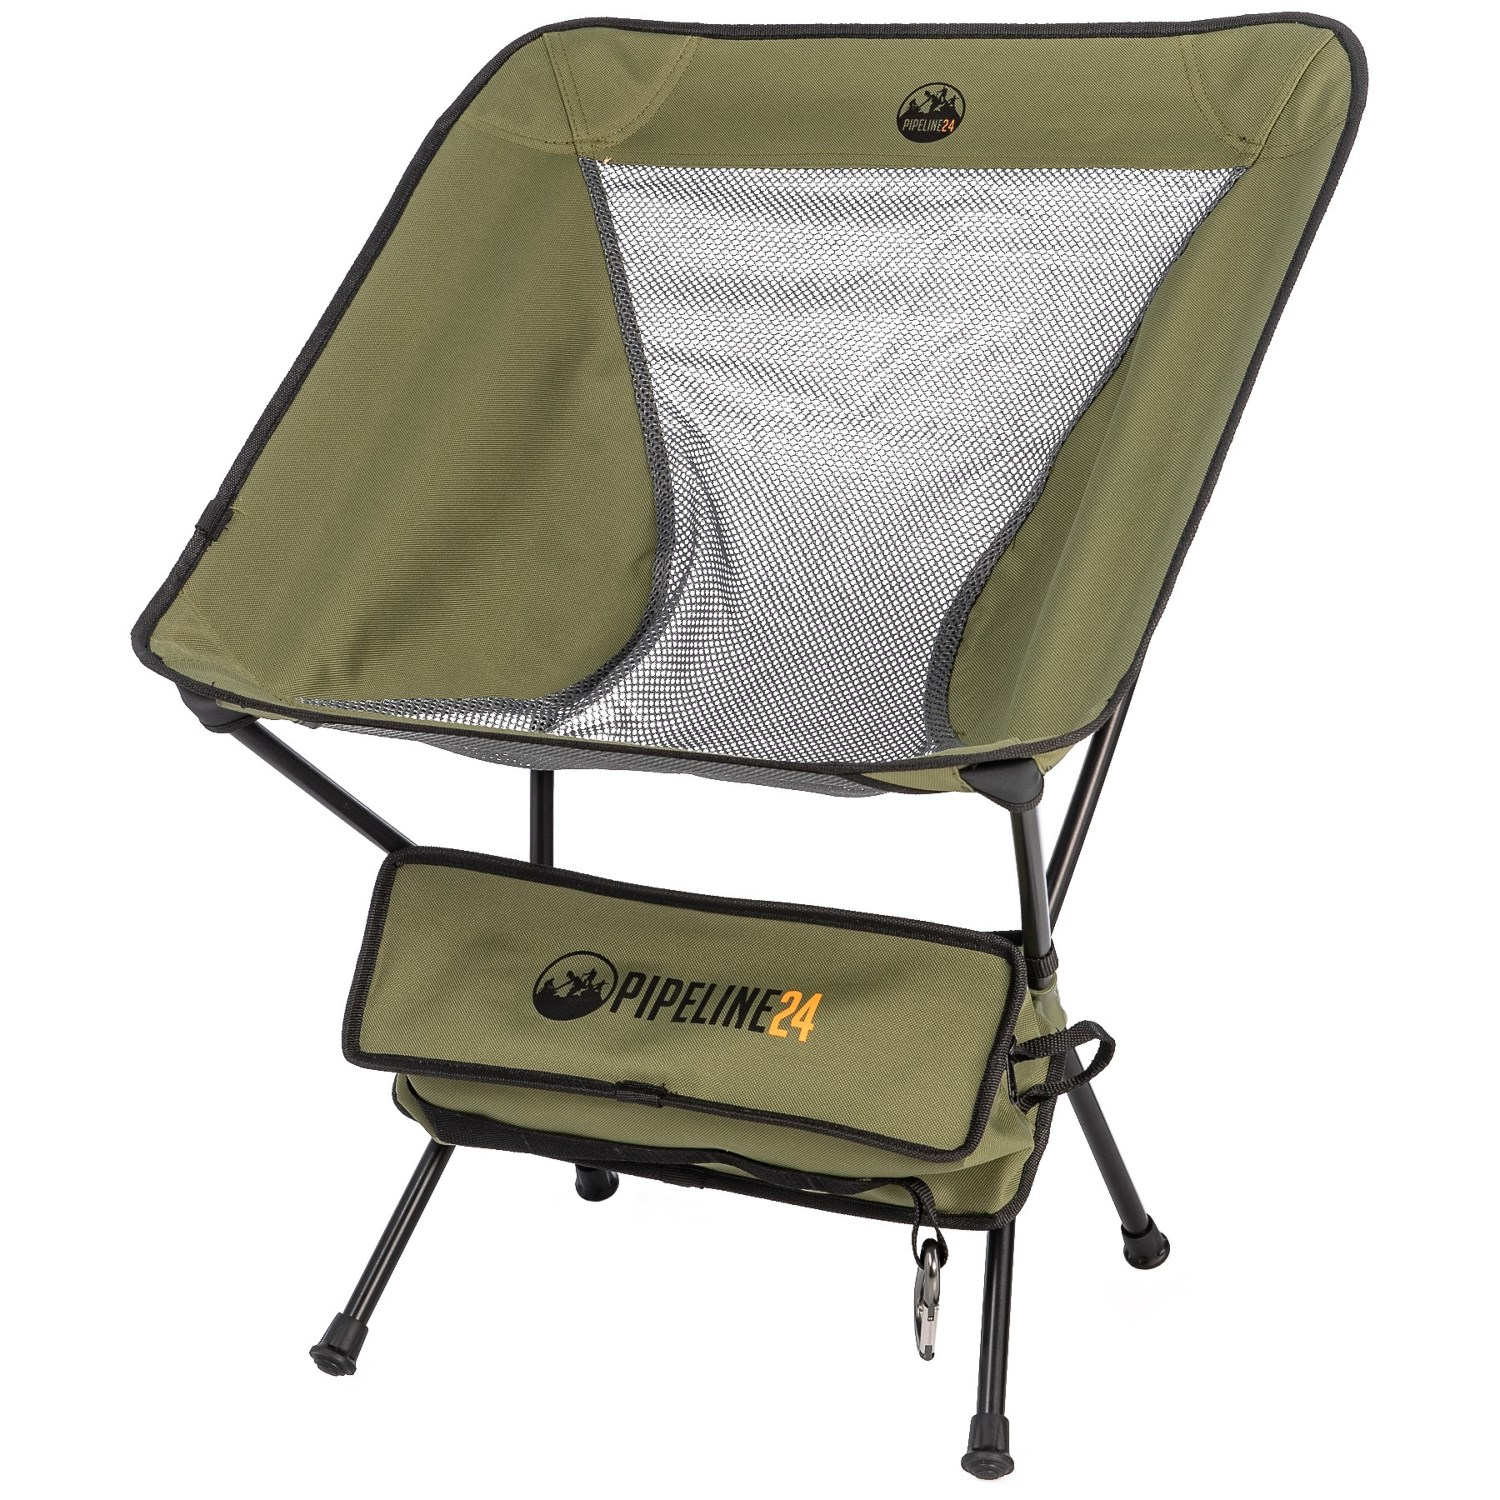 Pipeline 24 Lightweight Packaway Camping Chair Save 33